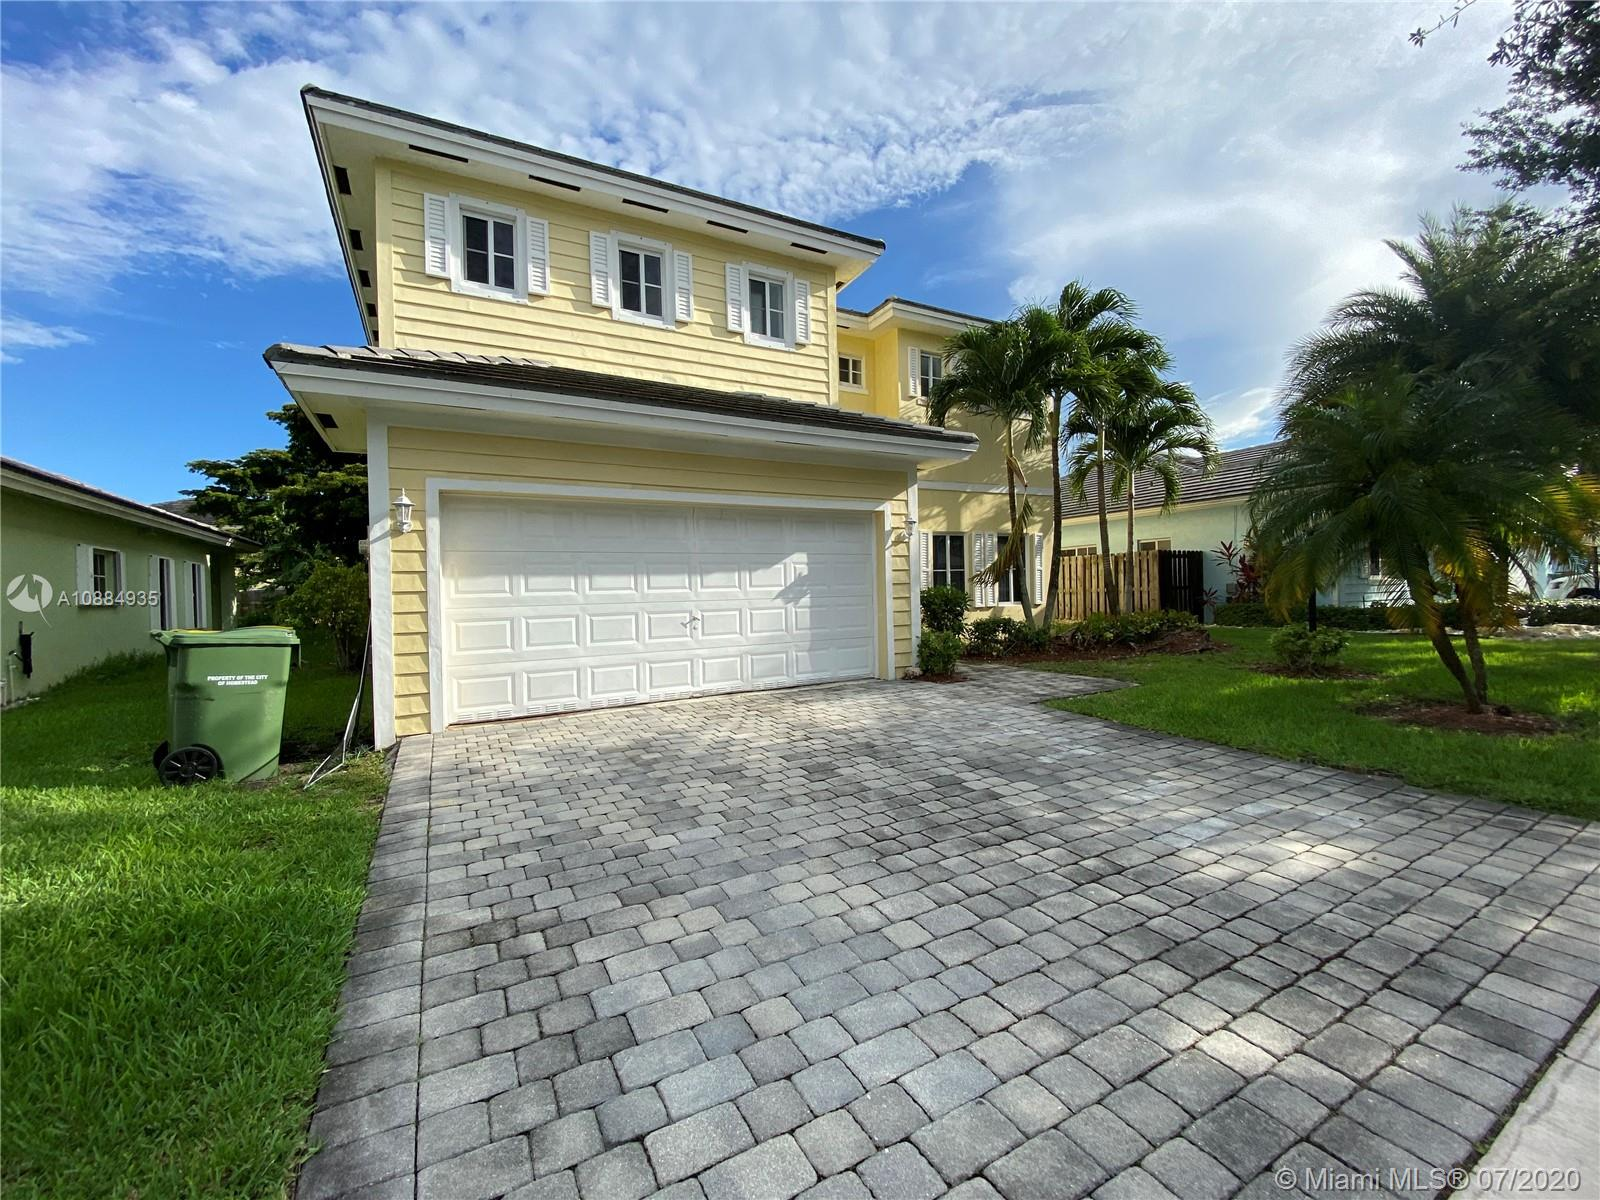 2866 NE 4th St Property Photo - Homestead, FL real estate listing